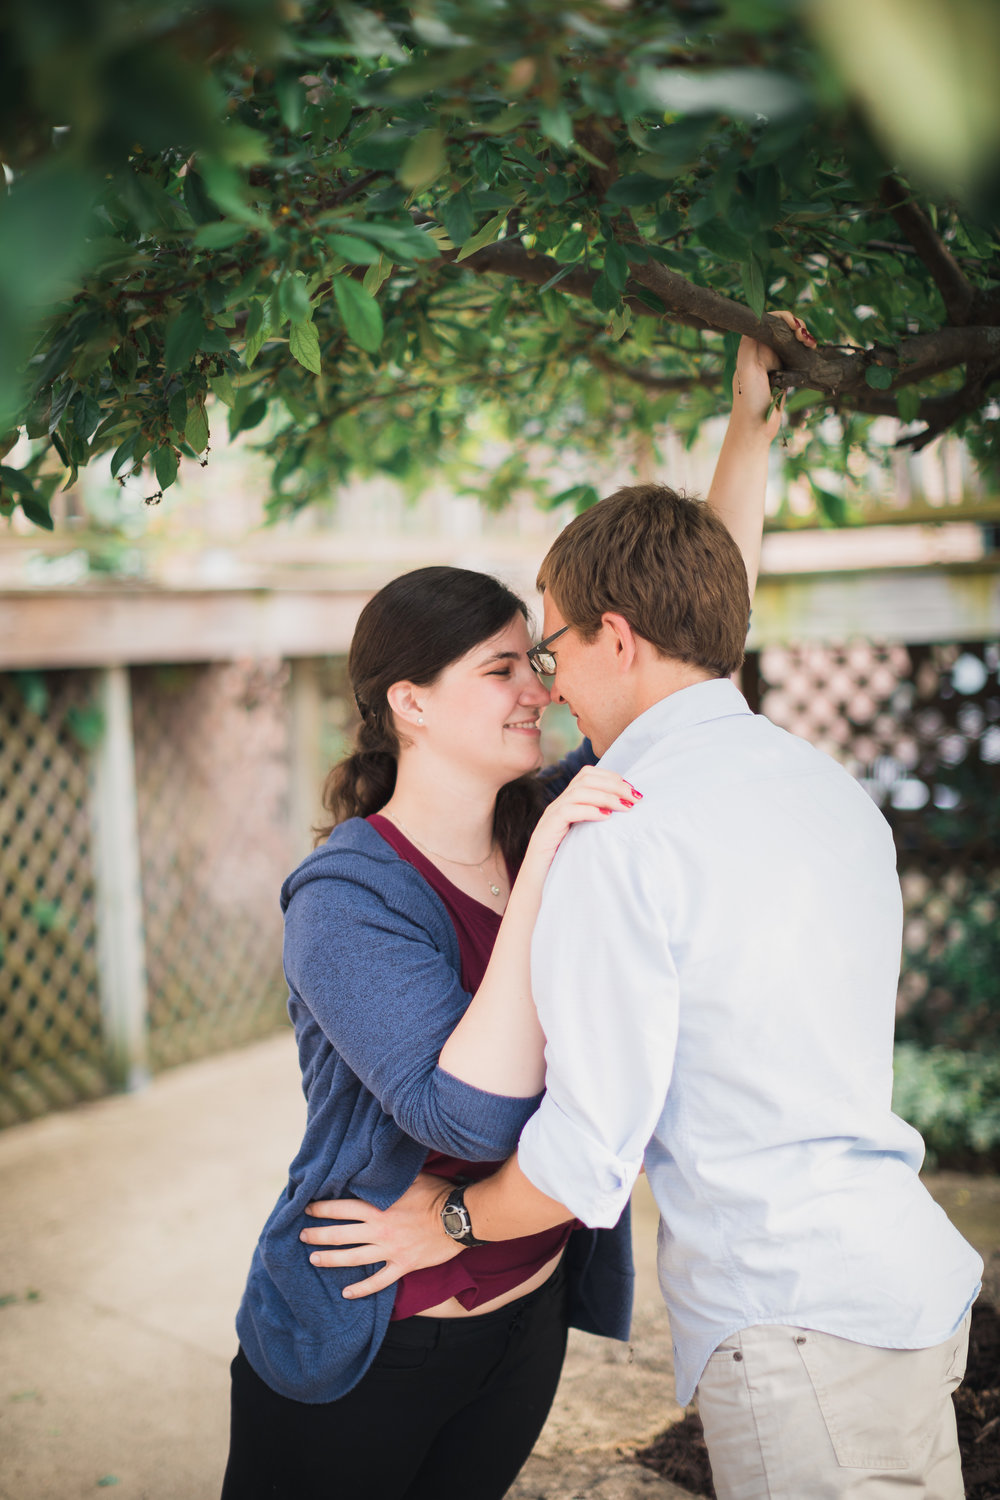 20180620_leslie_and_grant_engagement_26_5R3A0238.jpg